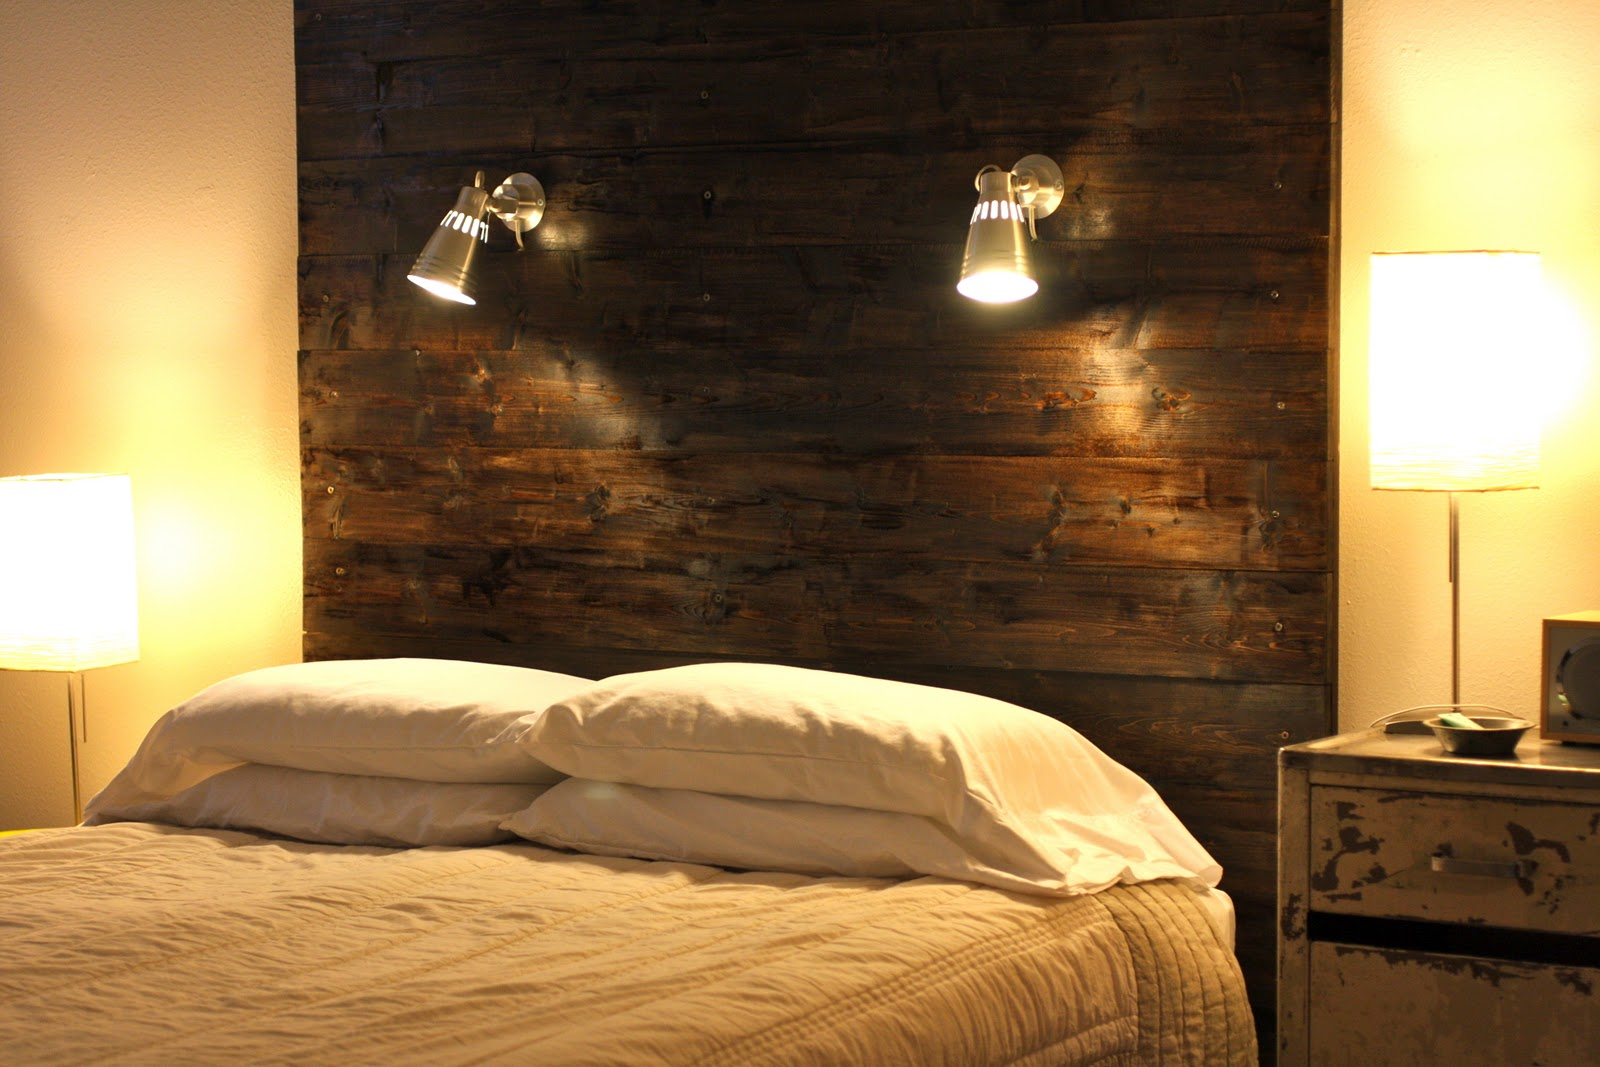 diy-headboard-ideas-8